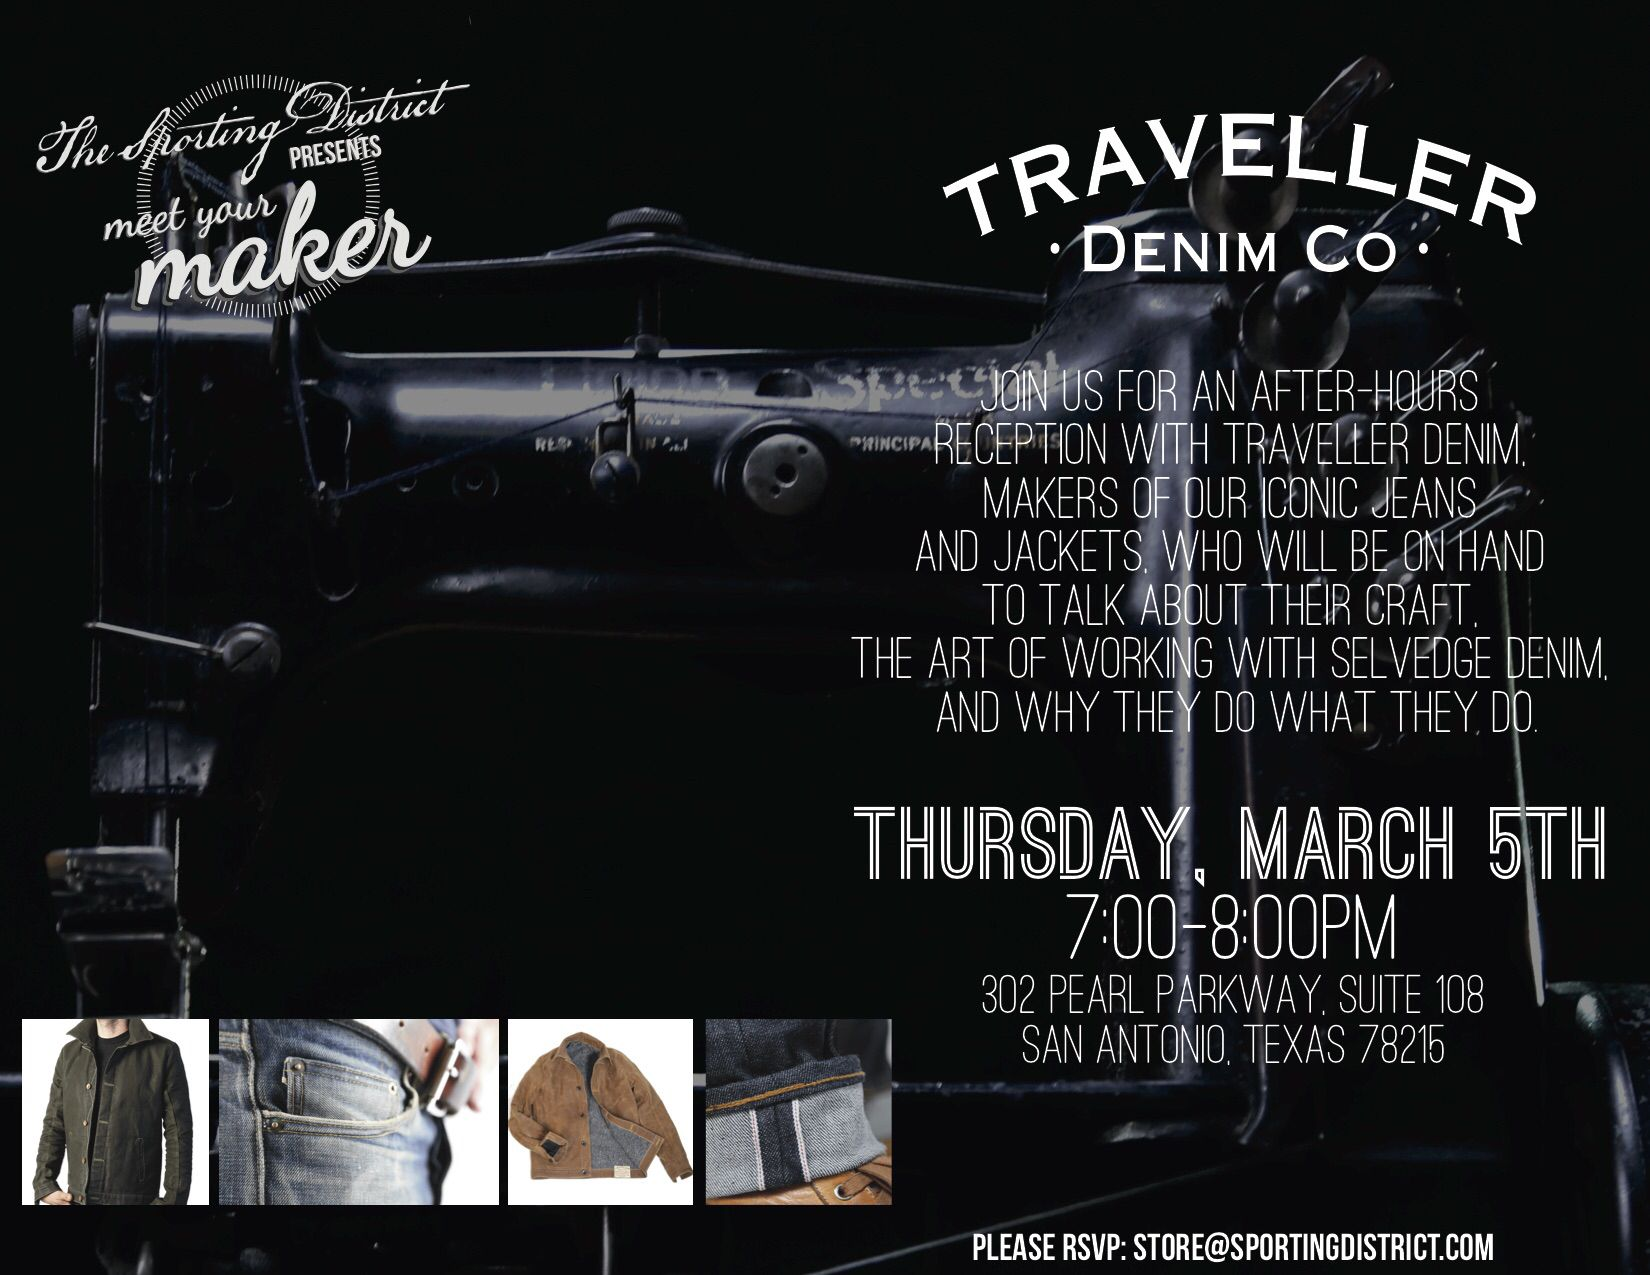 The Sporting District presents Meet Your Maker featuring Traveller Denim Co. #JCREDdesigns #Graphics #design #idea